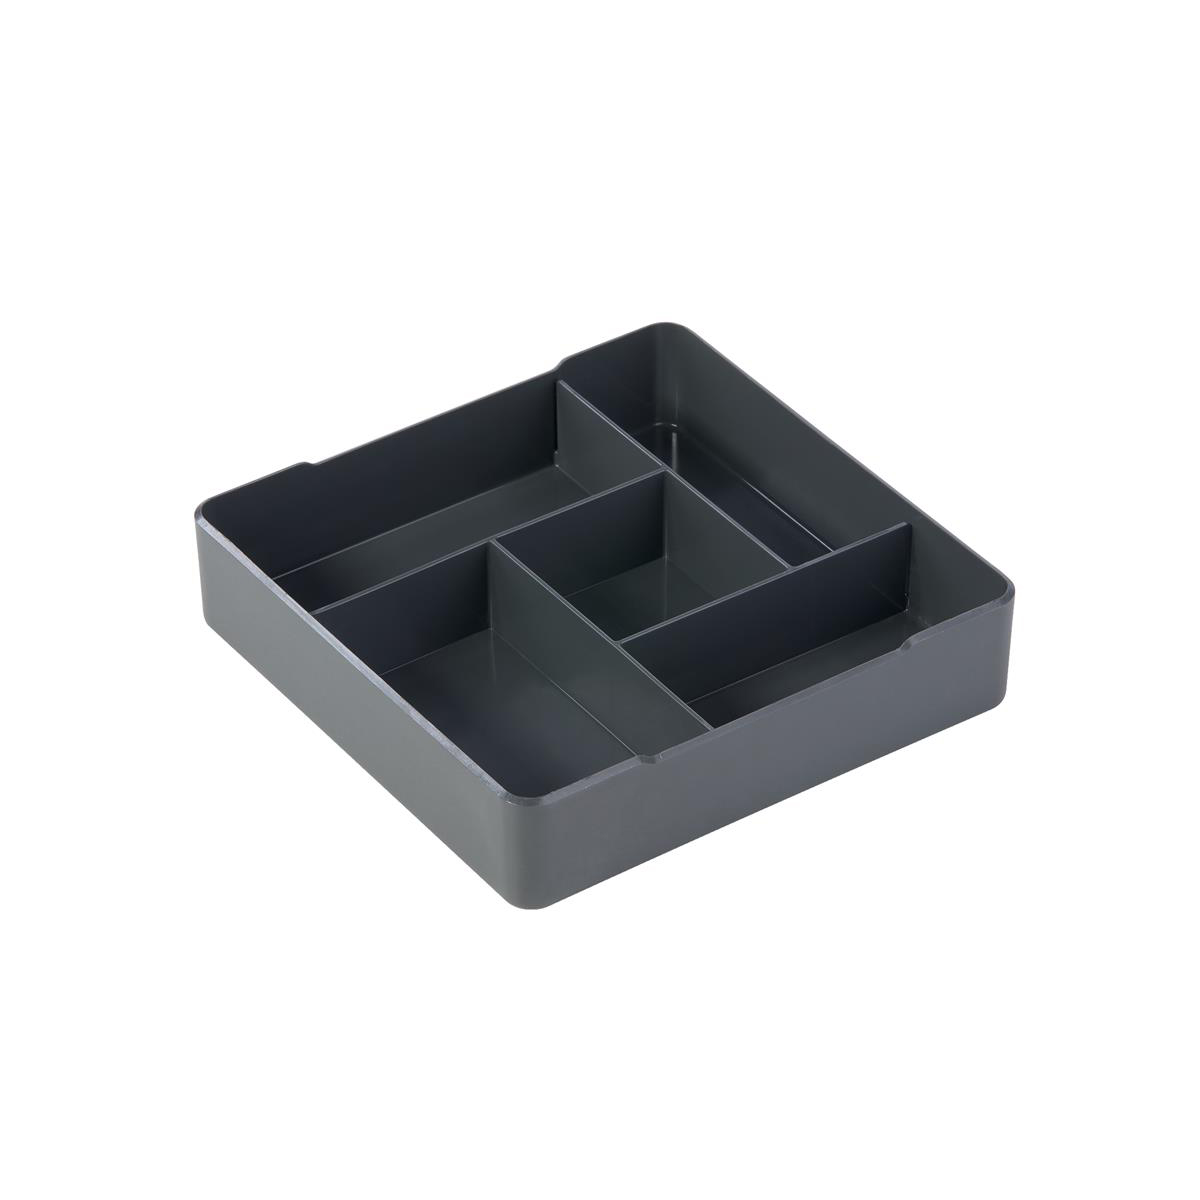 Tea / Coffee / Sugar Storage Durable Coffee Point Case High Quality Square Serving Aid Charcoal Ref 338658